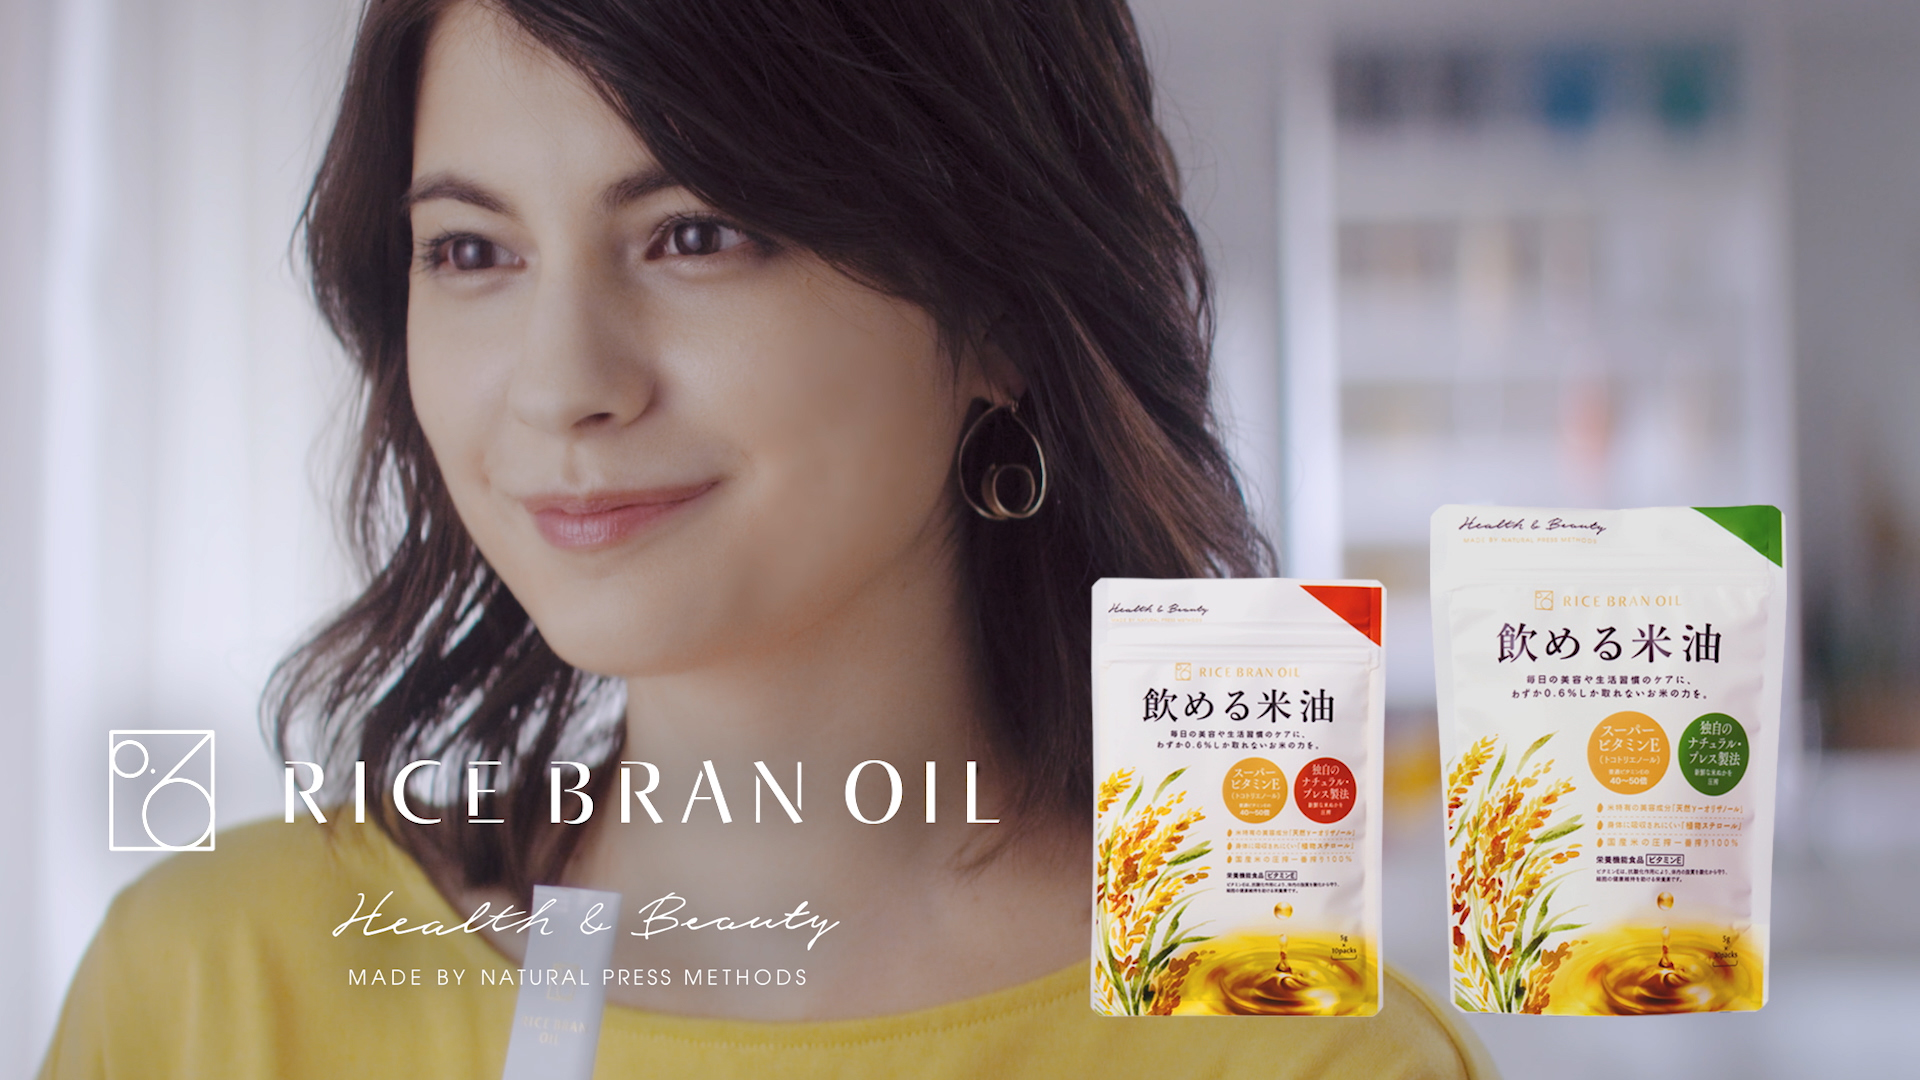 0.6 RICE BRAN OIL WEBCM